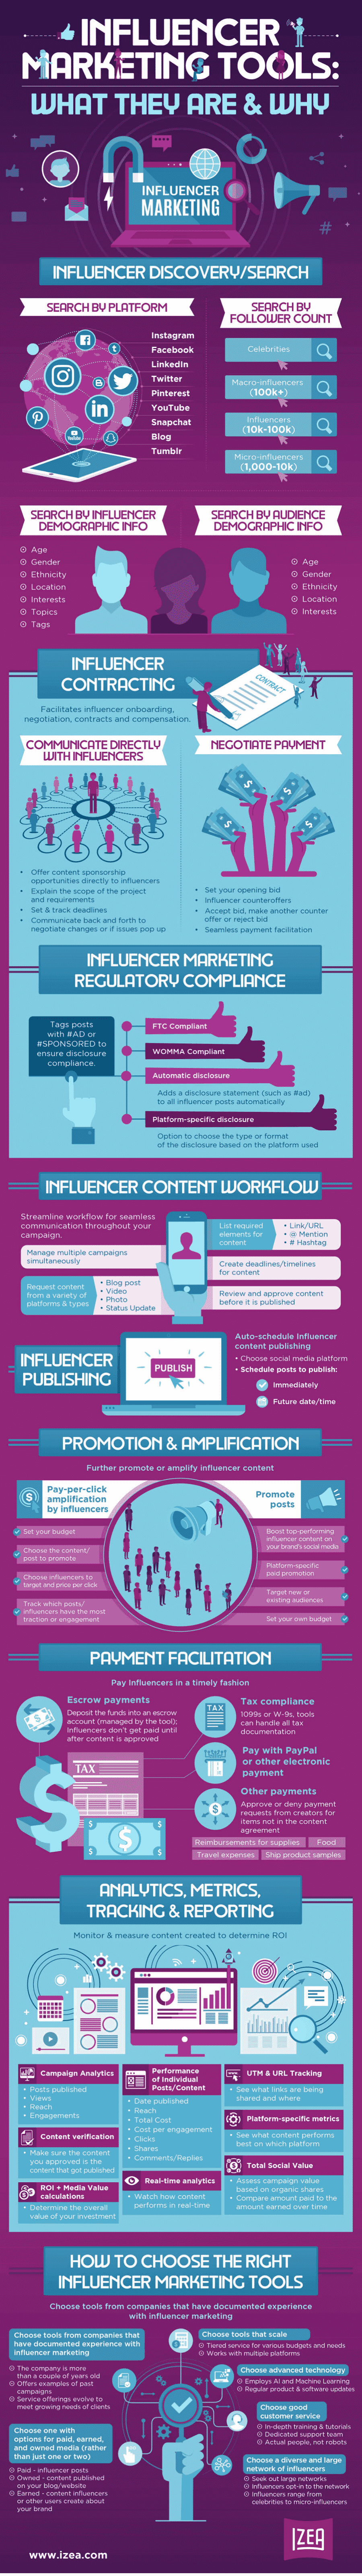 Take a quick course into the hows, whys, and what you should look for in influencer marketing tools, in this amazing infographic!